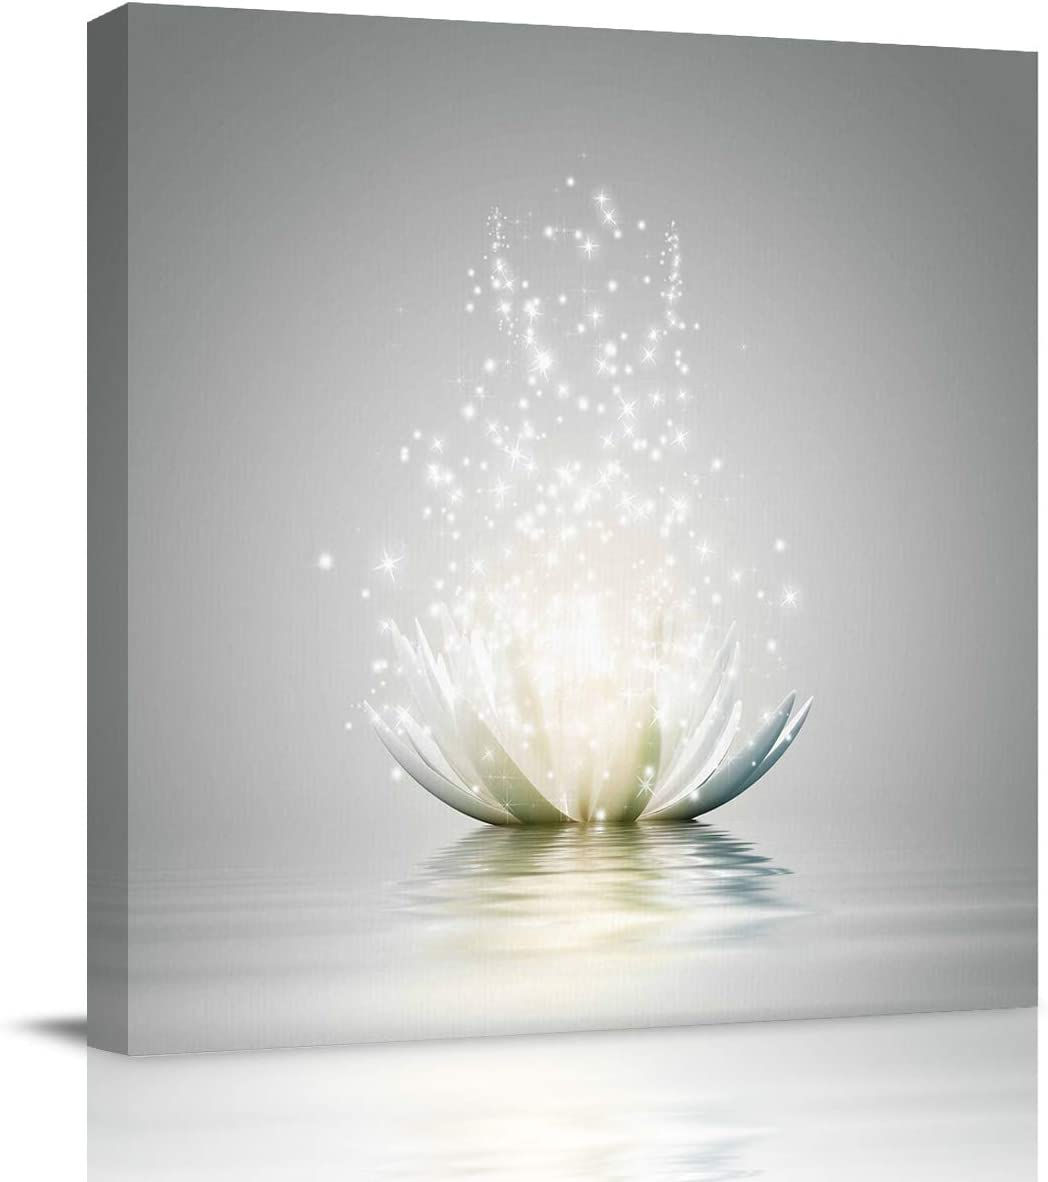 Abstract Wall Art on Canvas for Bedroom Living Room Bathrooms Kitchen,Art Lotus Flower Pattern White Artworks Office Home Decor,Stretched by Wooden Frame,Ready to Hang,12x12in